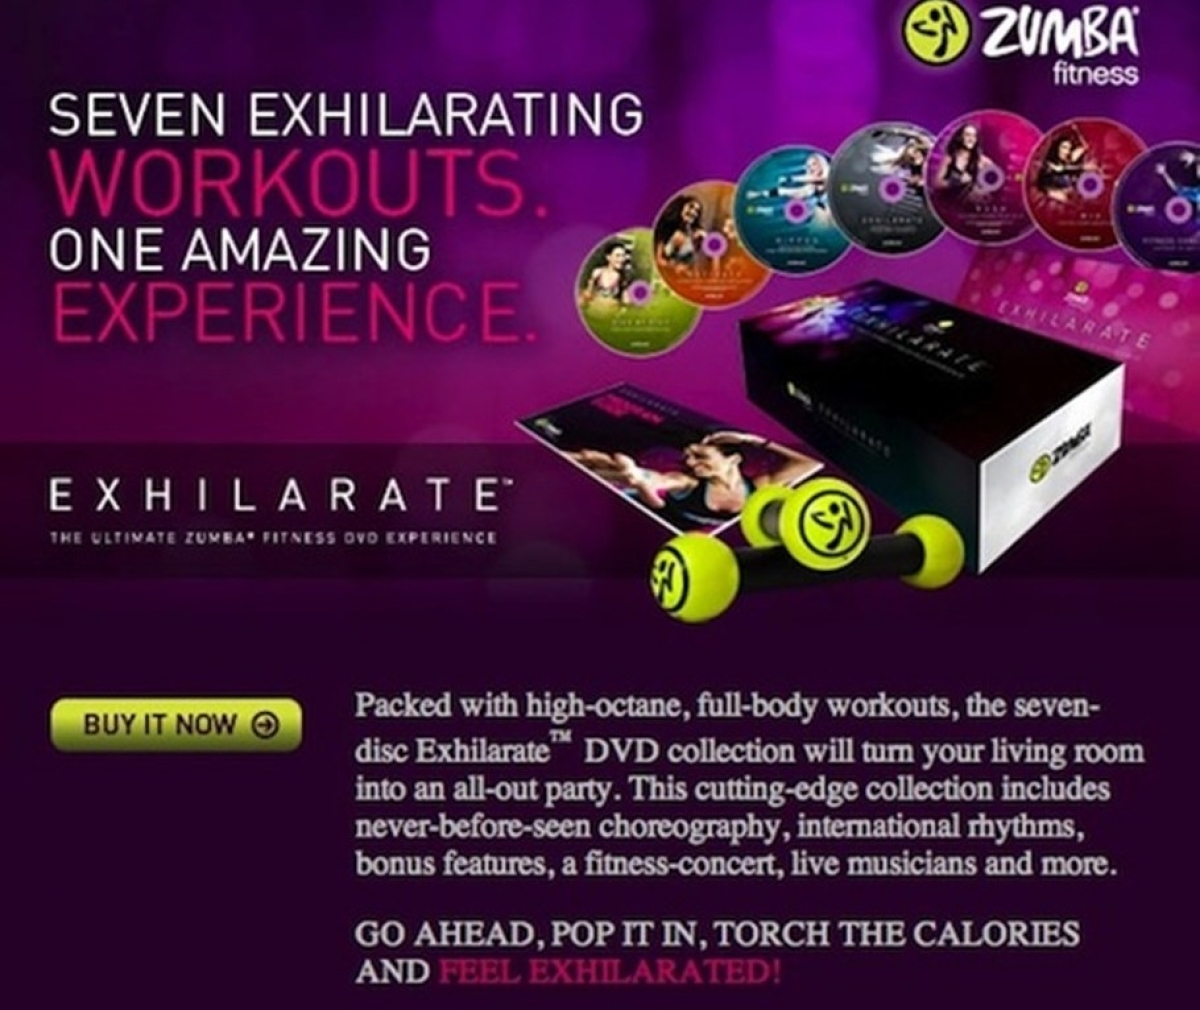 zumba exhilarate fitness 7dvd workout program with tonning sticks set. Black Bedroom Furniture Sets. Home Design Ideas